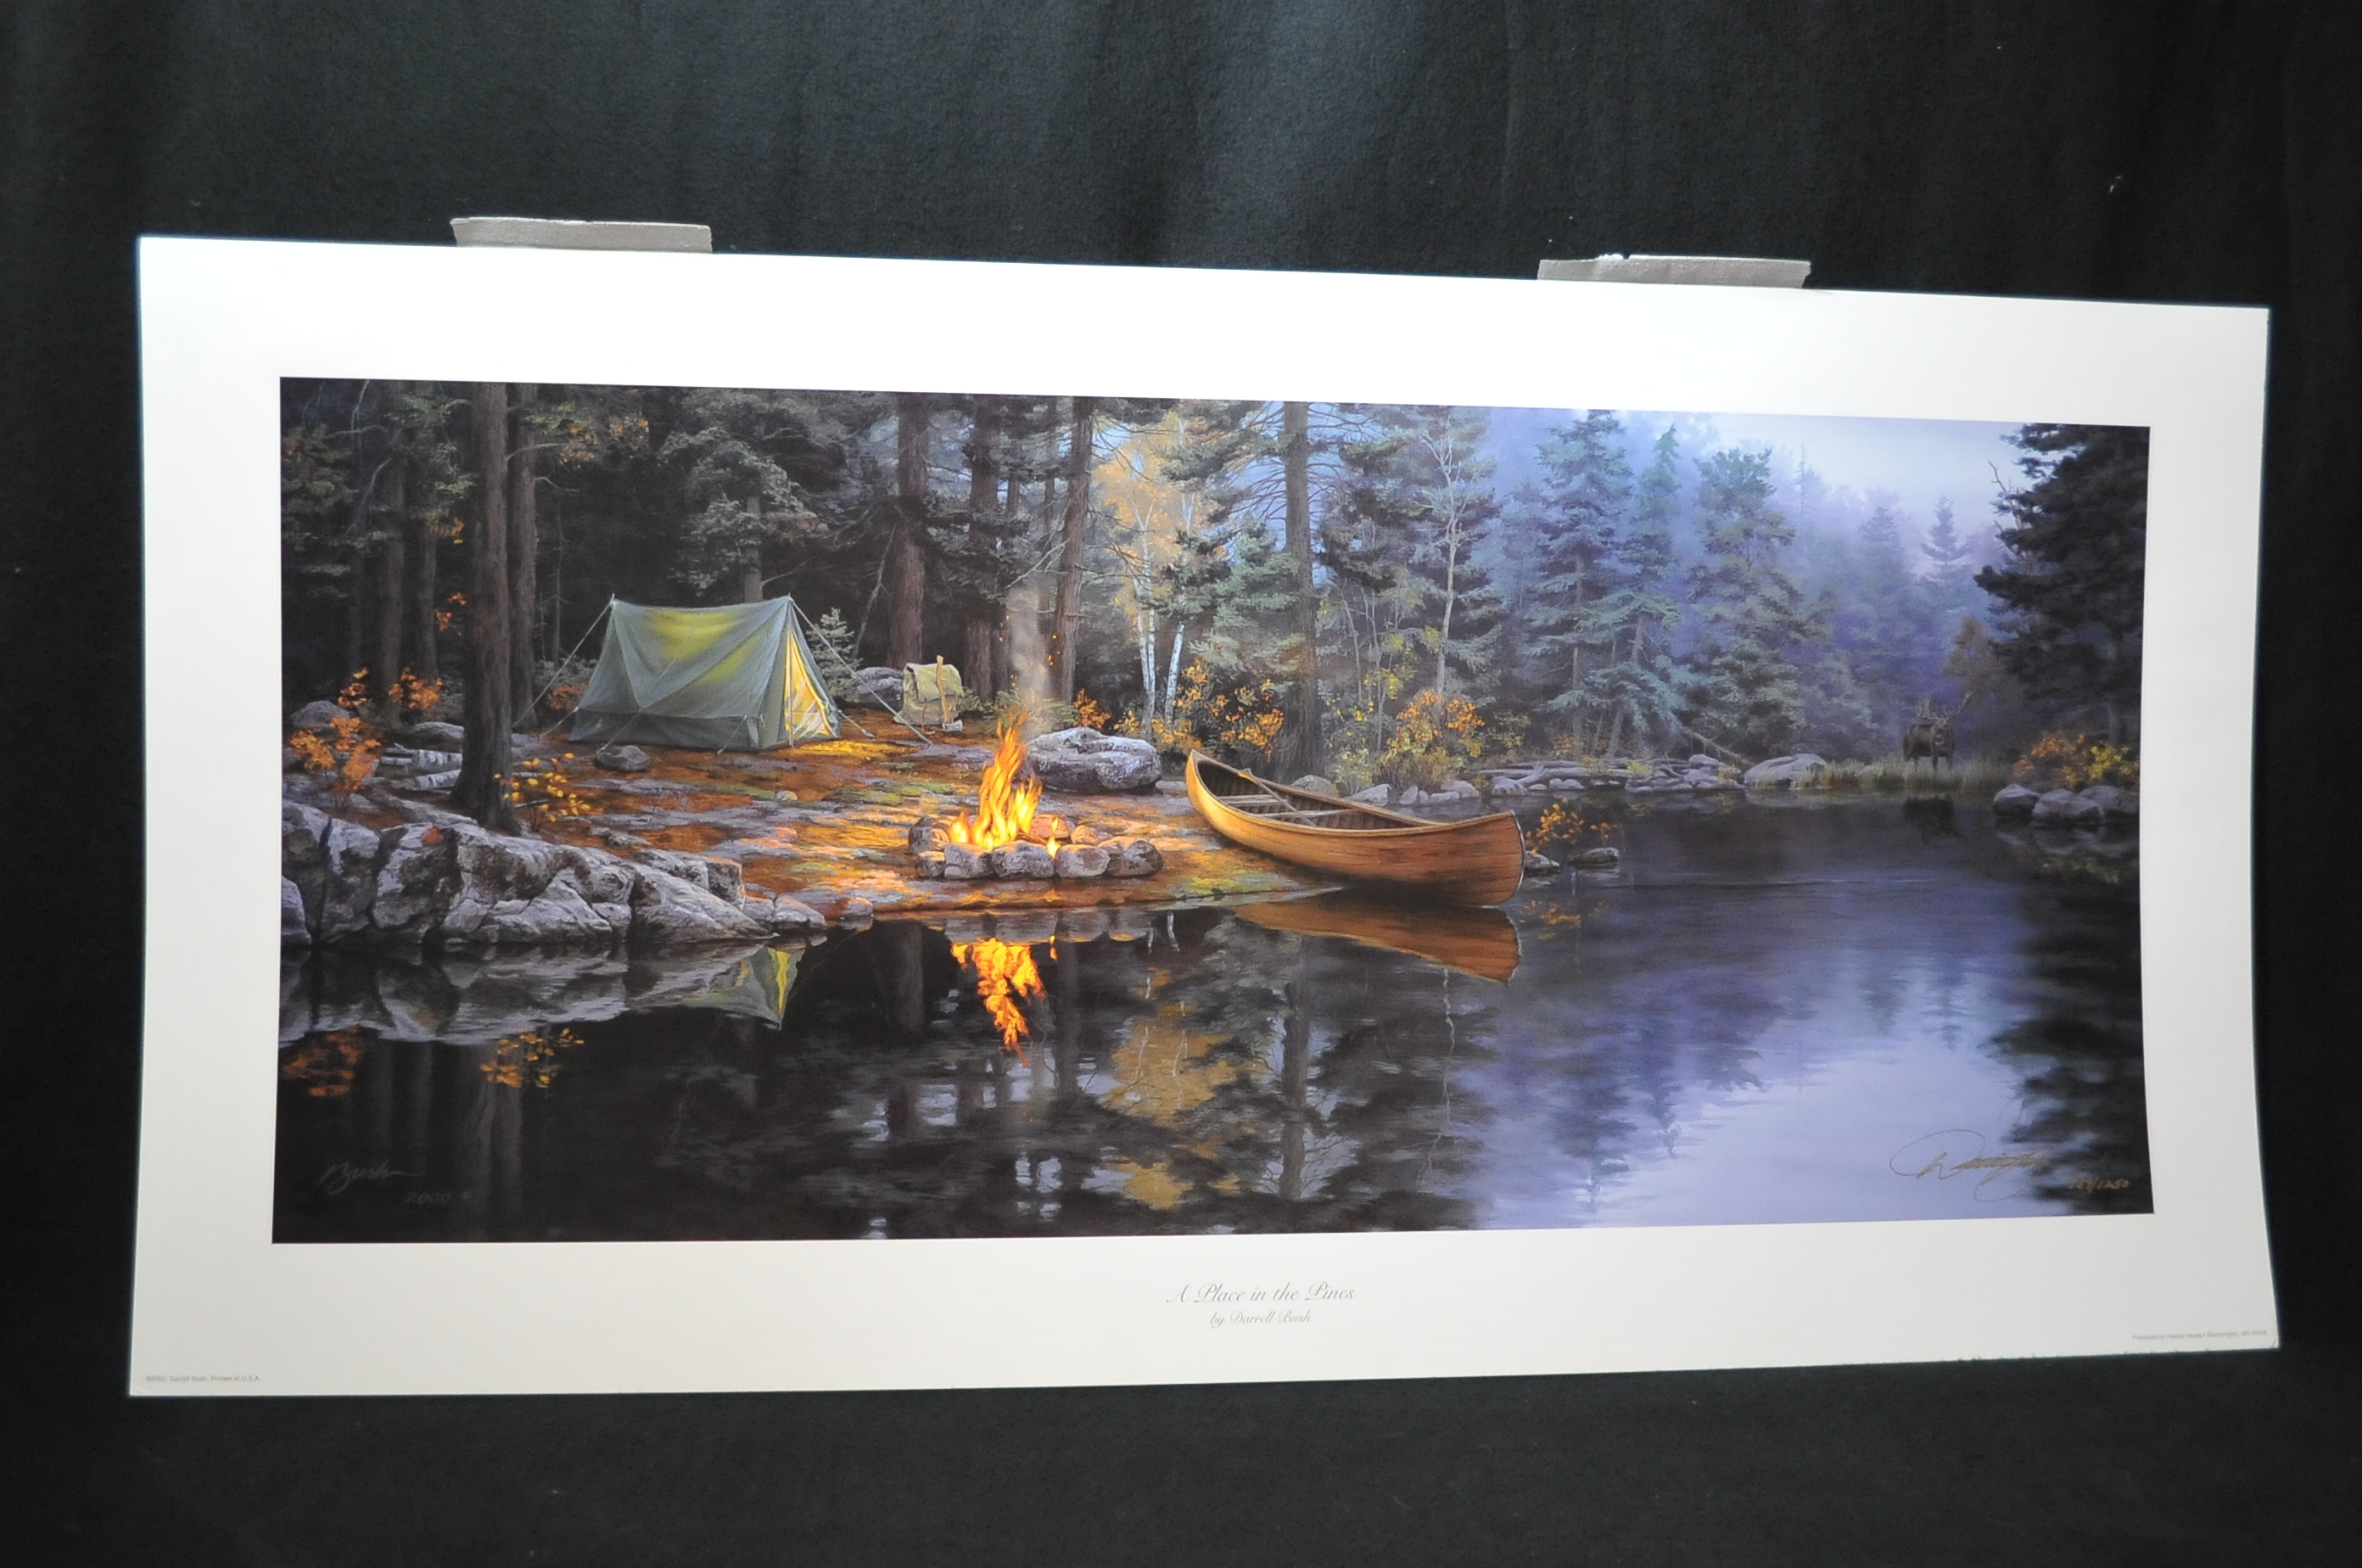 Darrell Bush Place in the Pines Signed Numbered Limited Edition Canoeing Camping Art